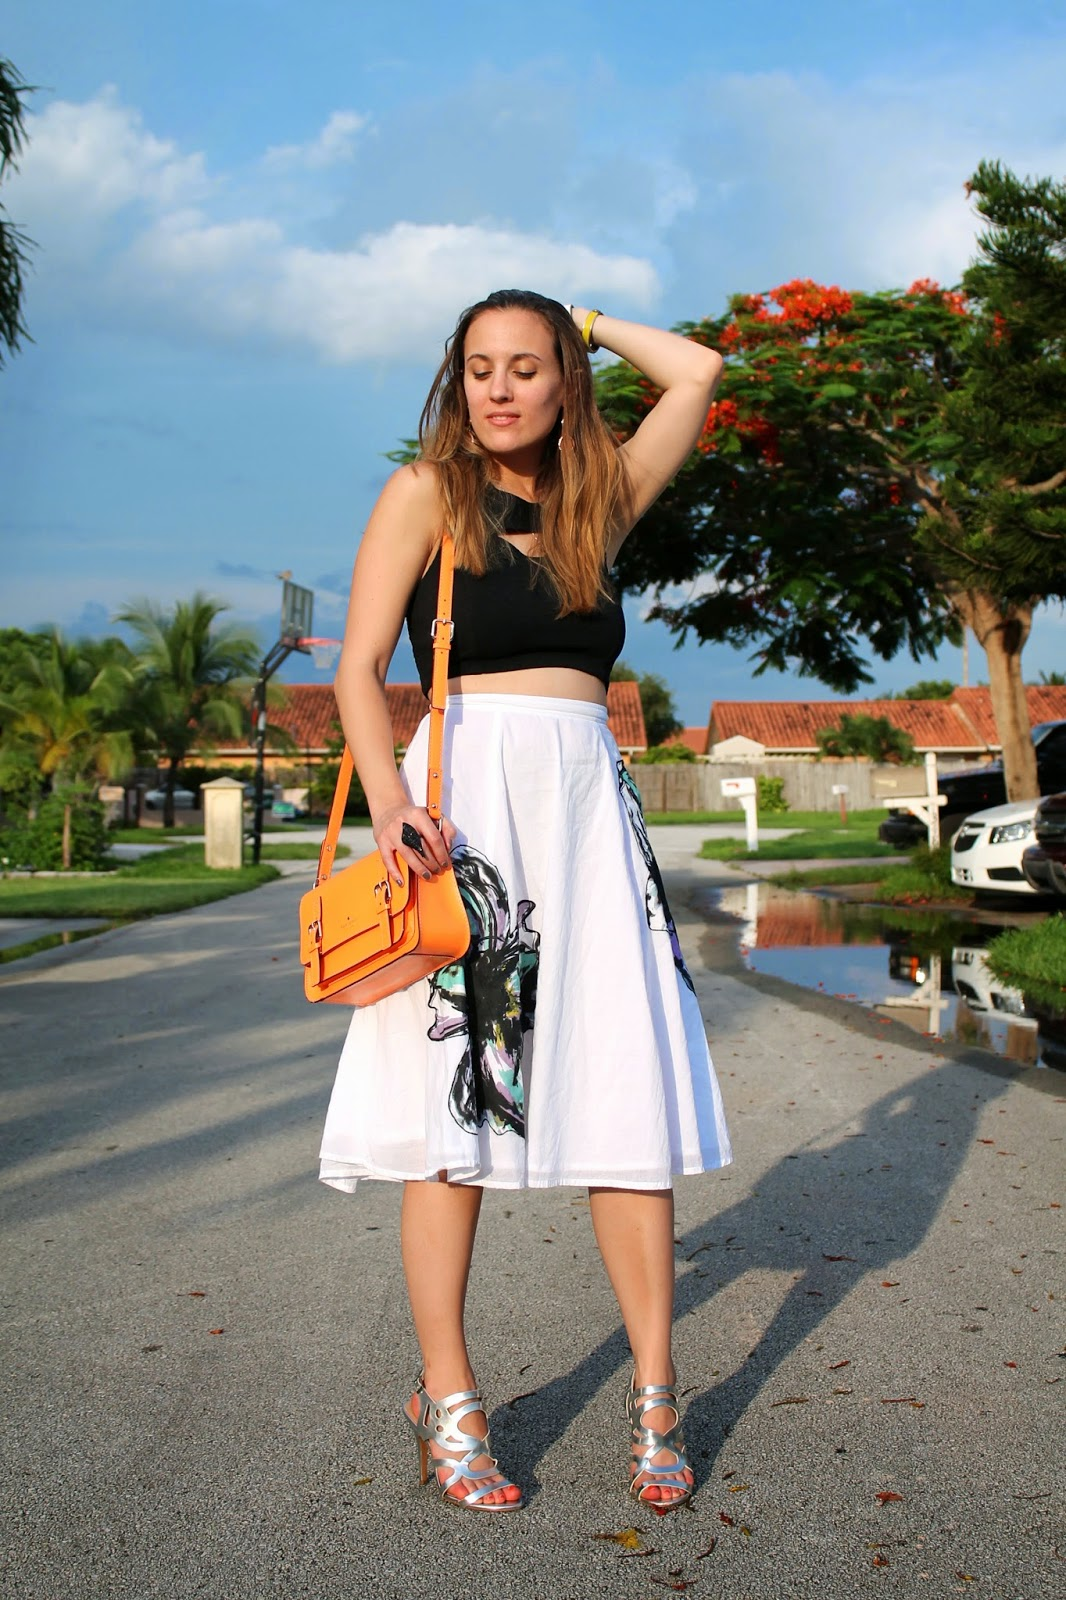 Miami Swim Week, MBFW Swim, LF Stores, eShakti, BCBGeneration, Kate Spade, Target, midi skirt, metallic, fashion week, Miami, Miami fashion blogger, street style